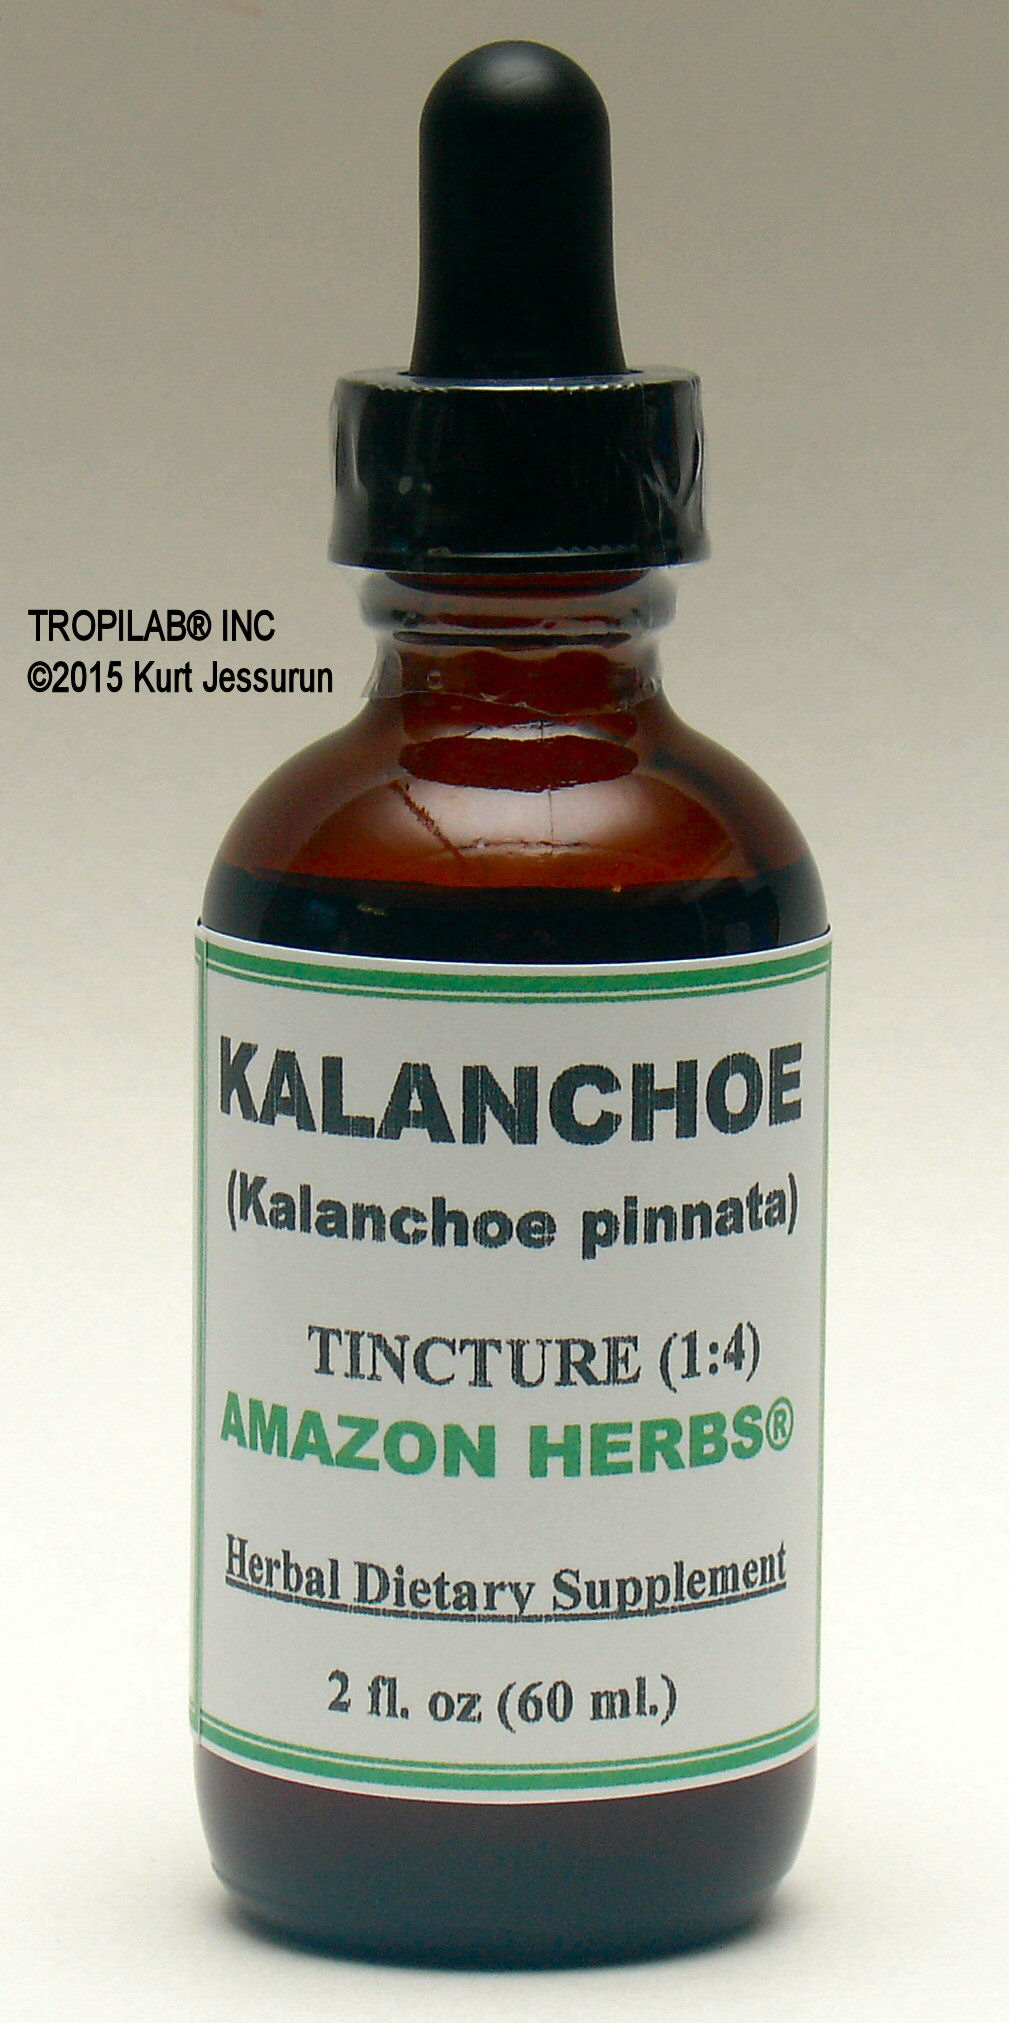 Kalanchoe pinnata, Air plant tincture only for US$18.65. Used against headaches, backaches and rheumatism. Against upper